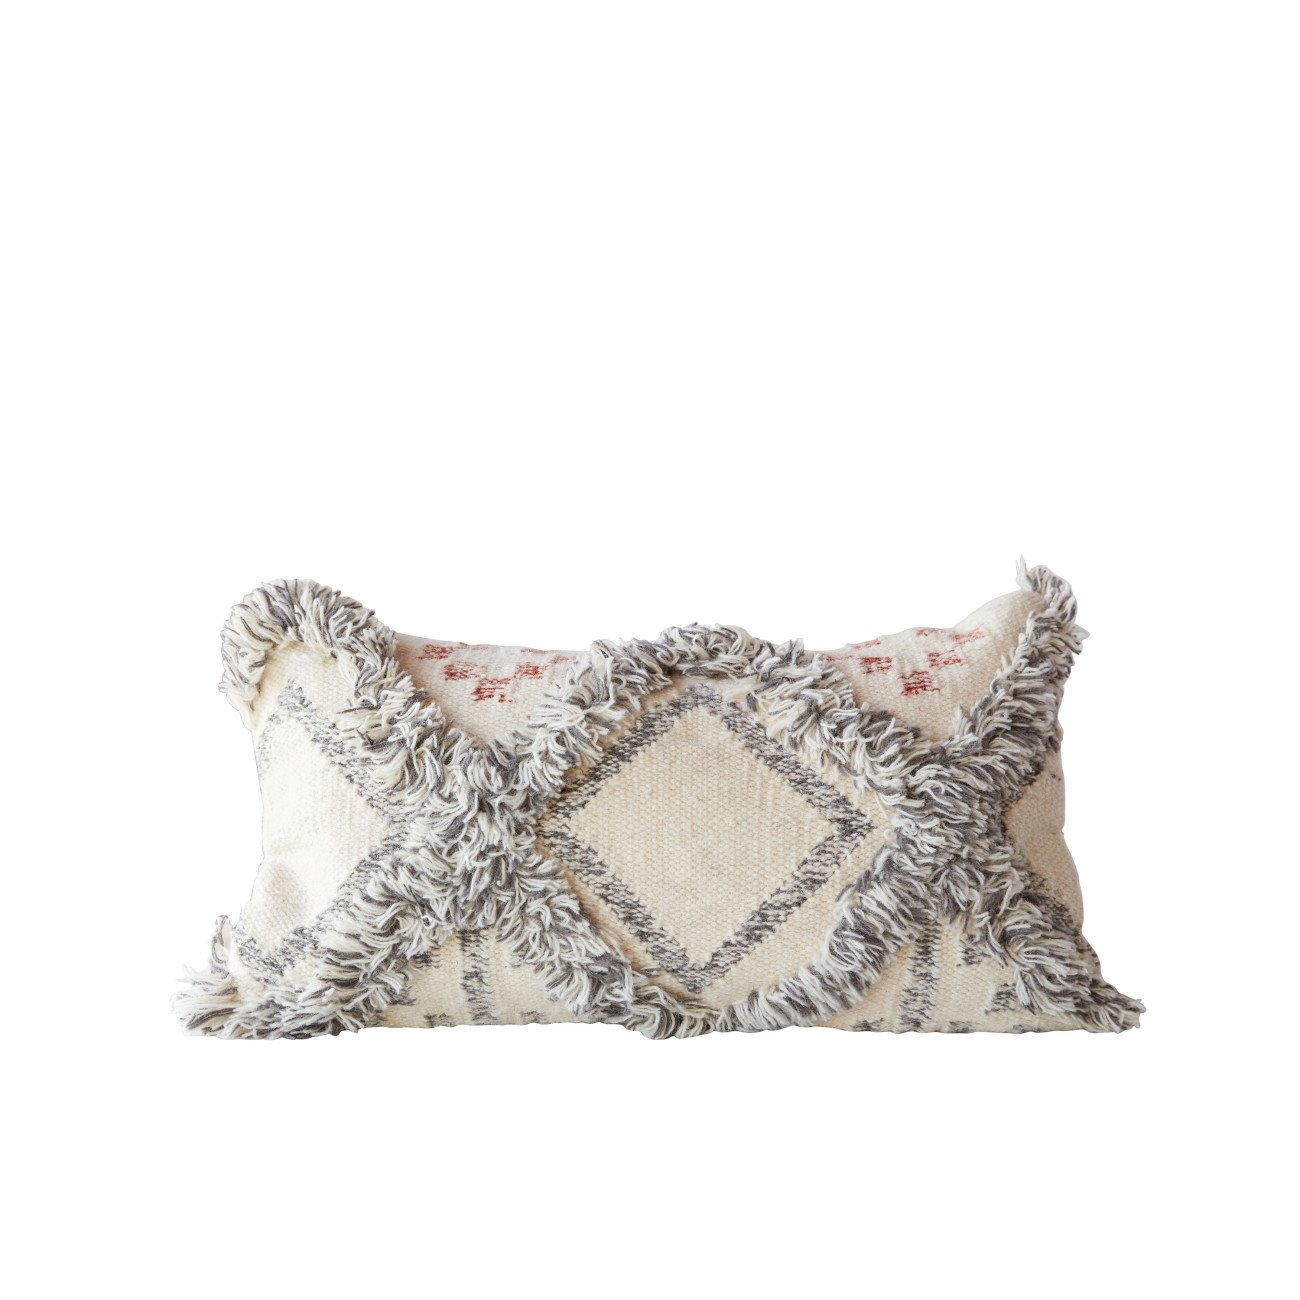 Wool Cream Kilim Pillow with Grey Fringe Accents